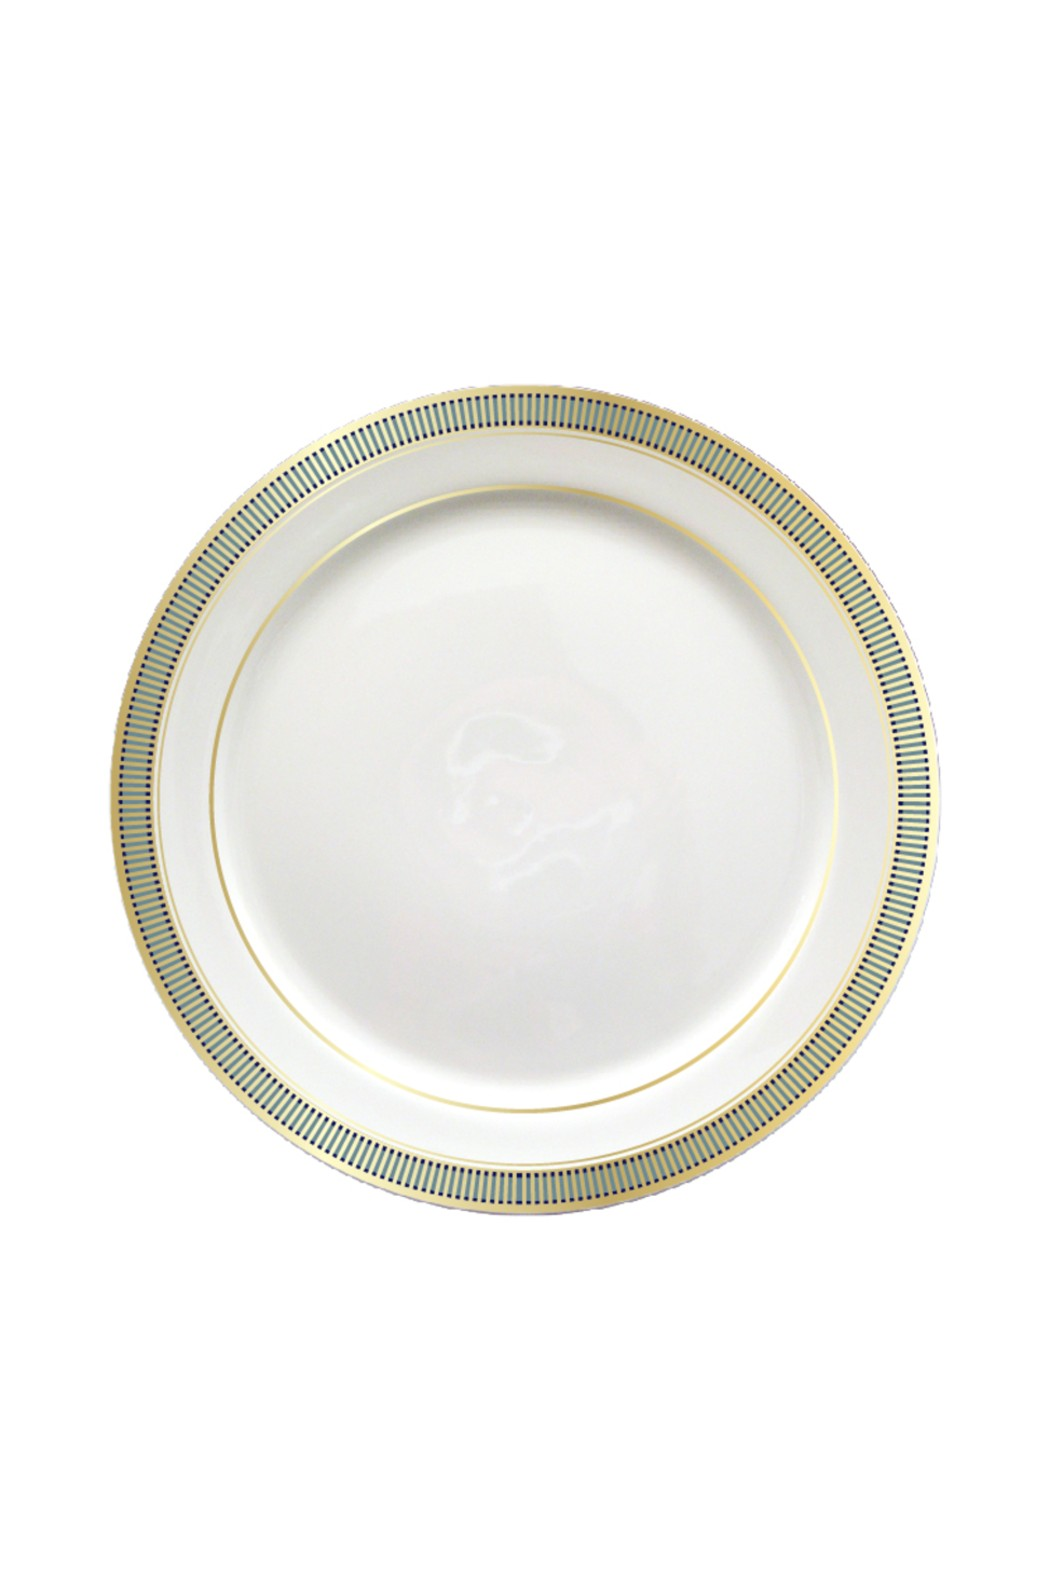 Pickard China Cypress Salad Plate For Monica & David